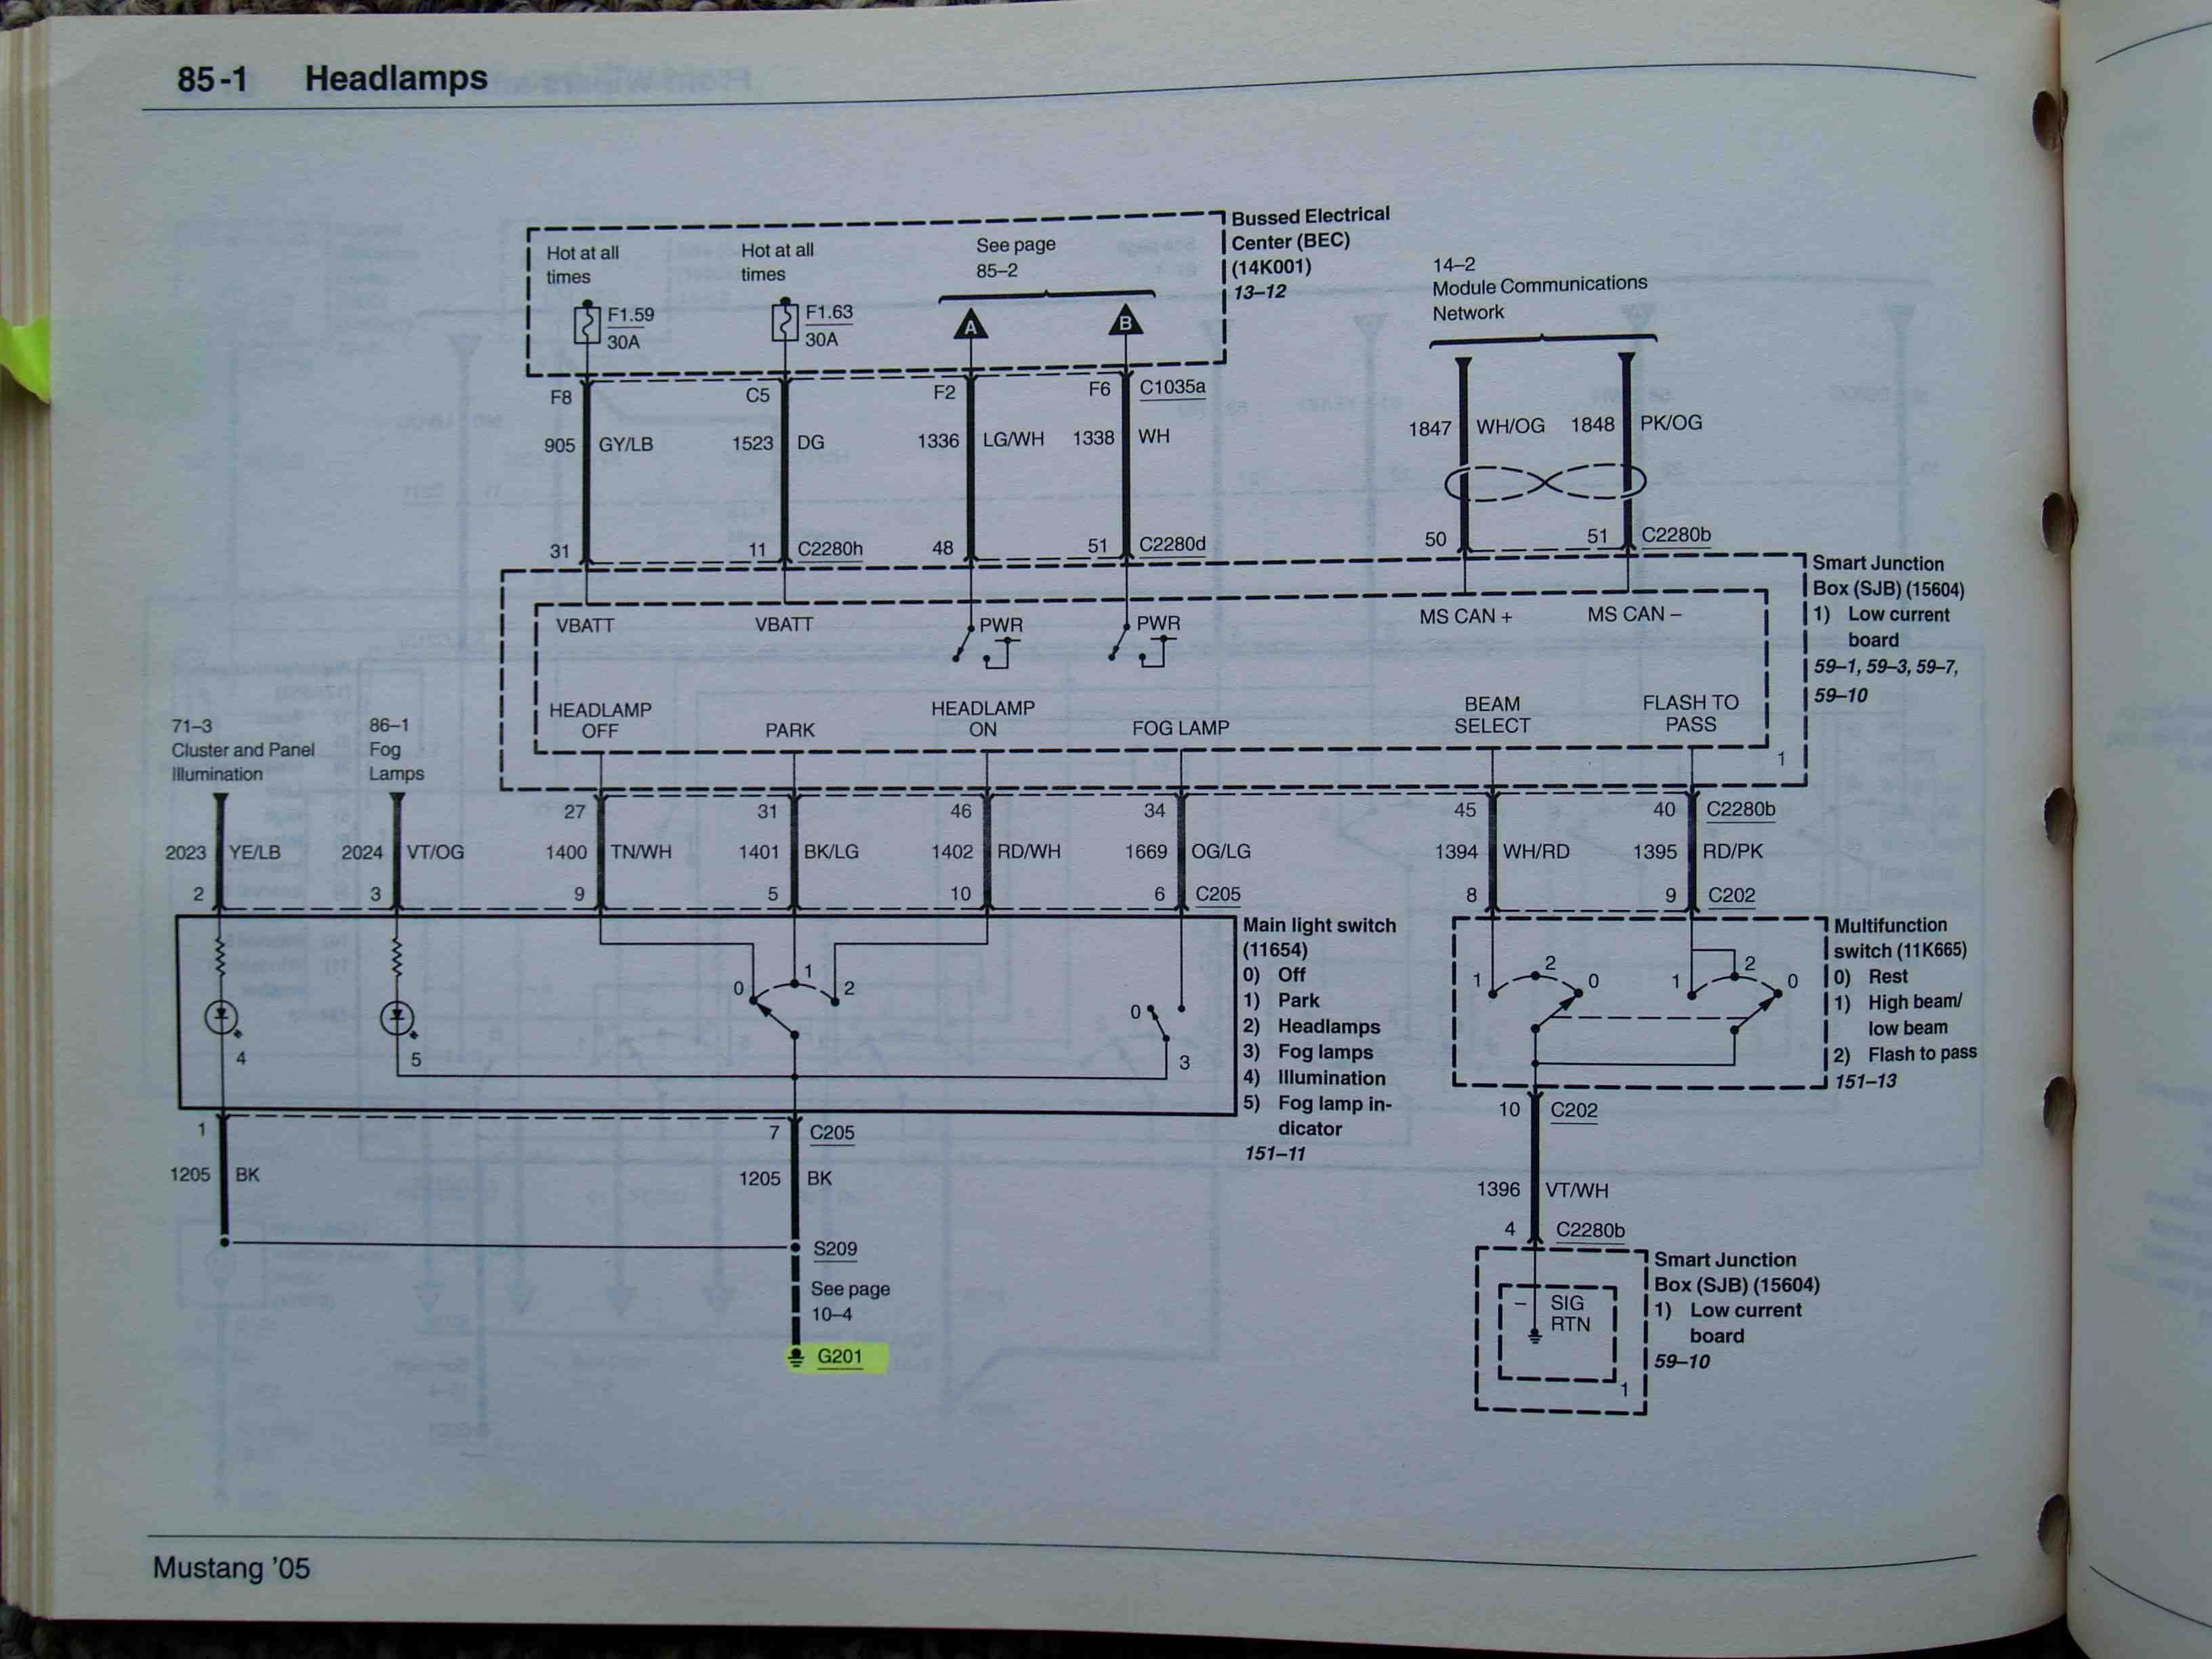 2008 Gt Headlight Wiring Diagram? Ford Mustang Forum 1970 Mustang Headlight Wiring  Diagram 2006 Mustang Headlight Wiring Diagram